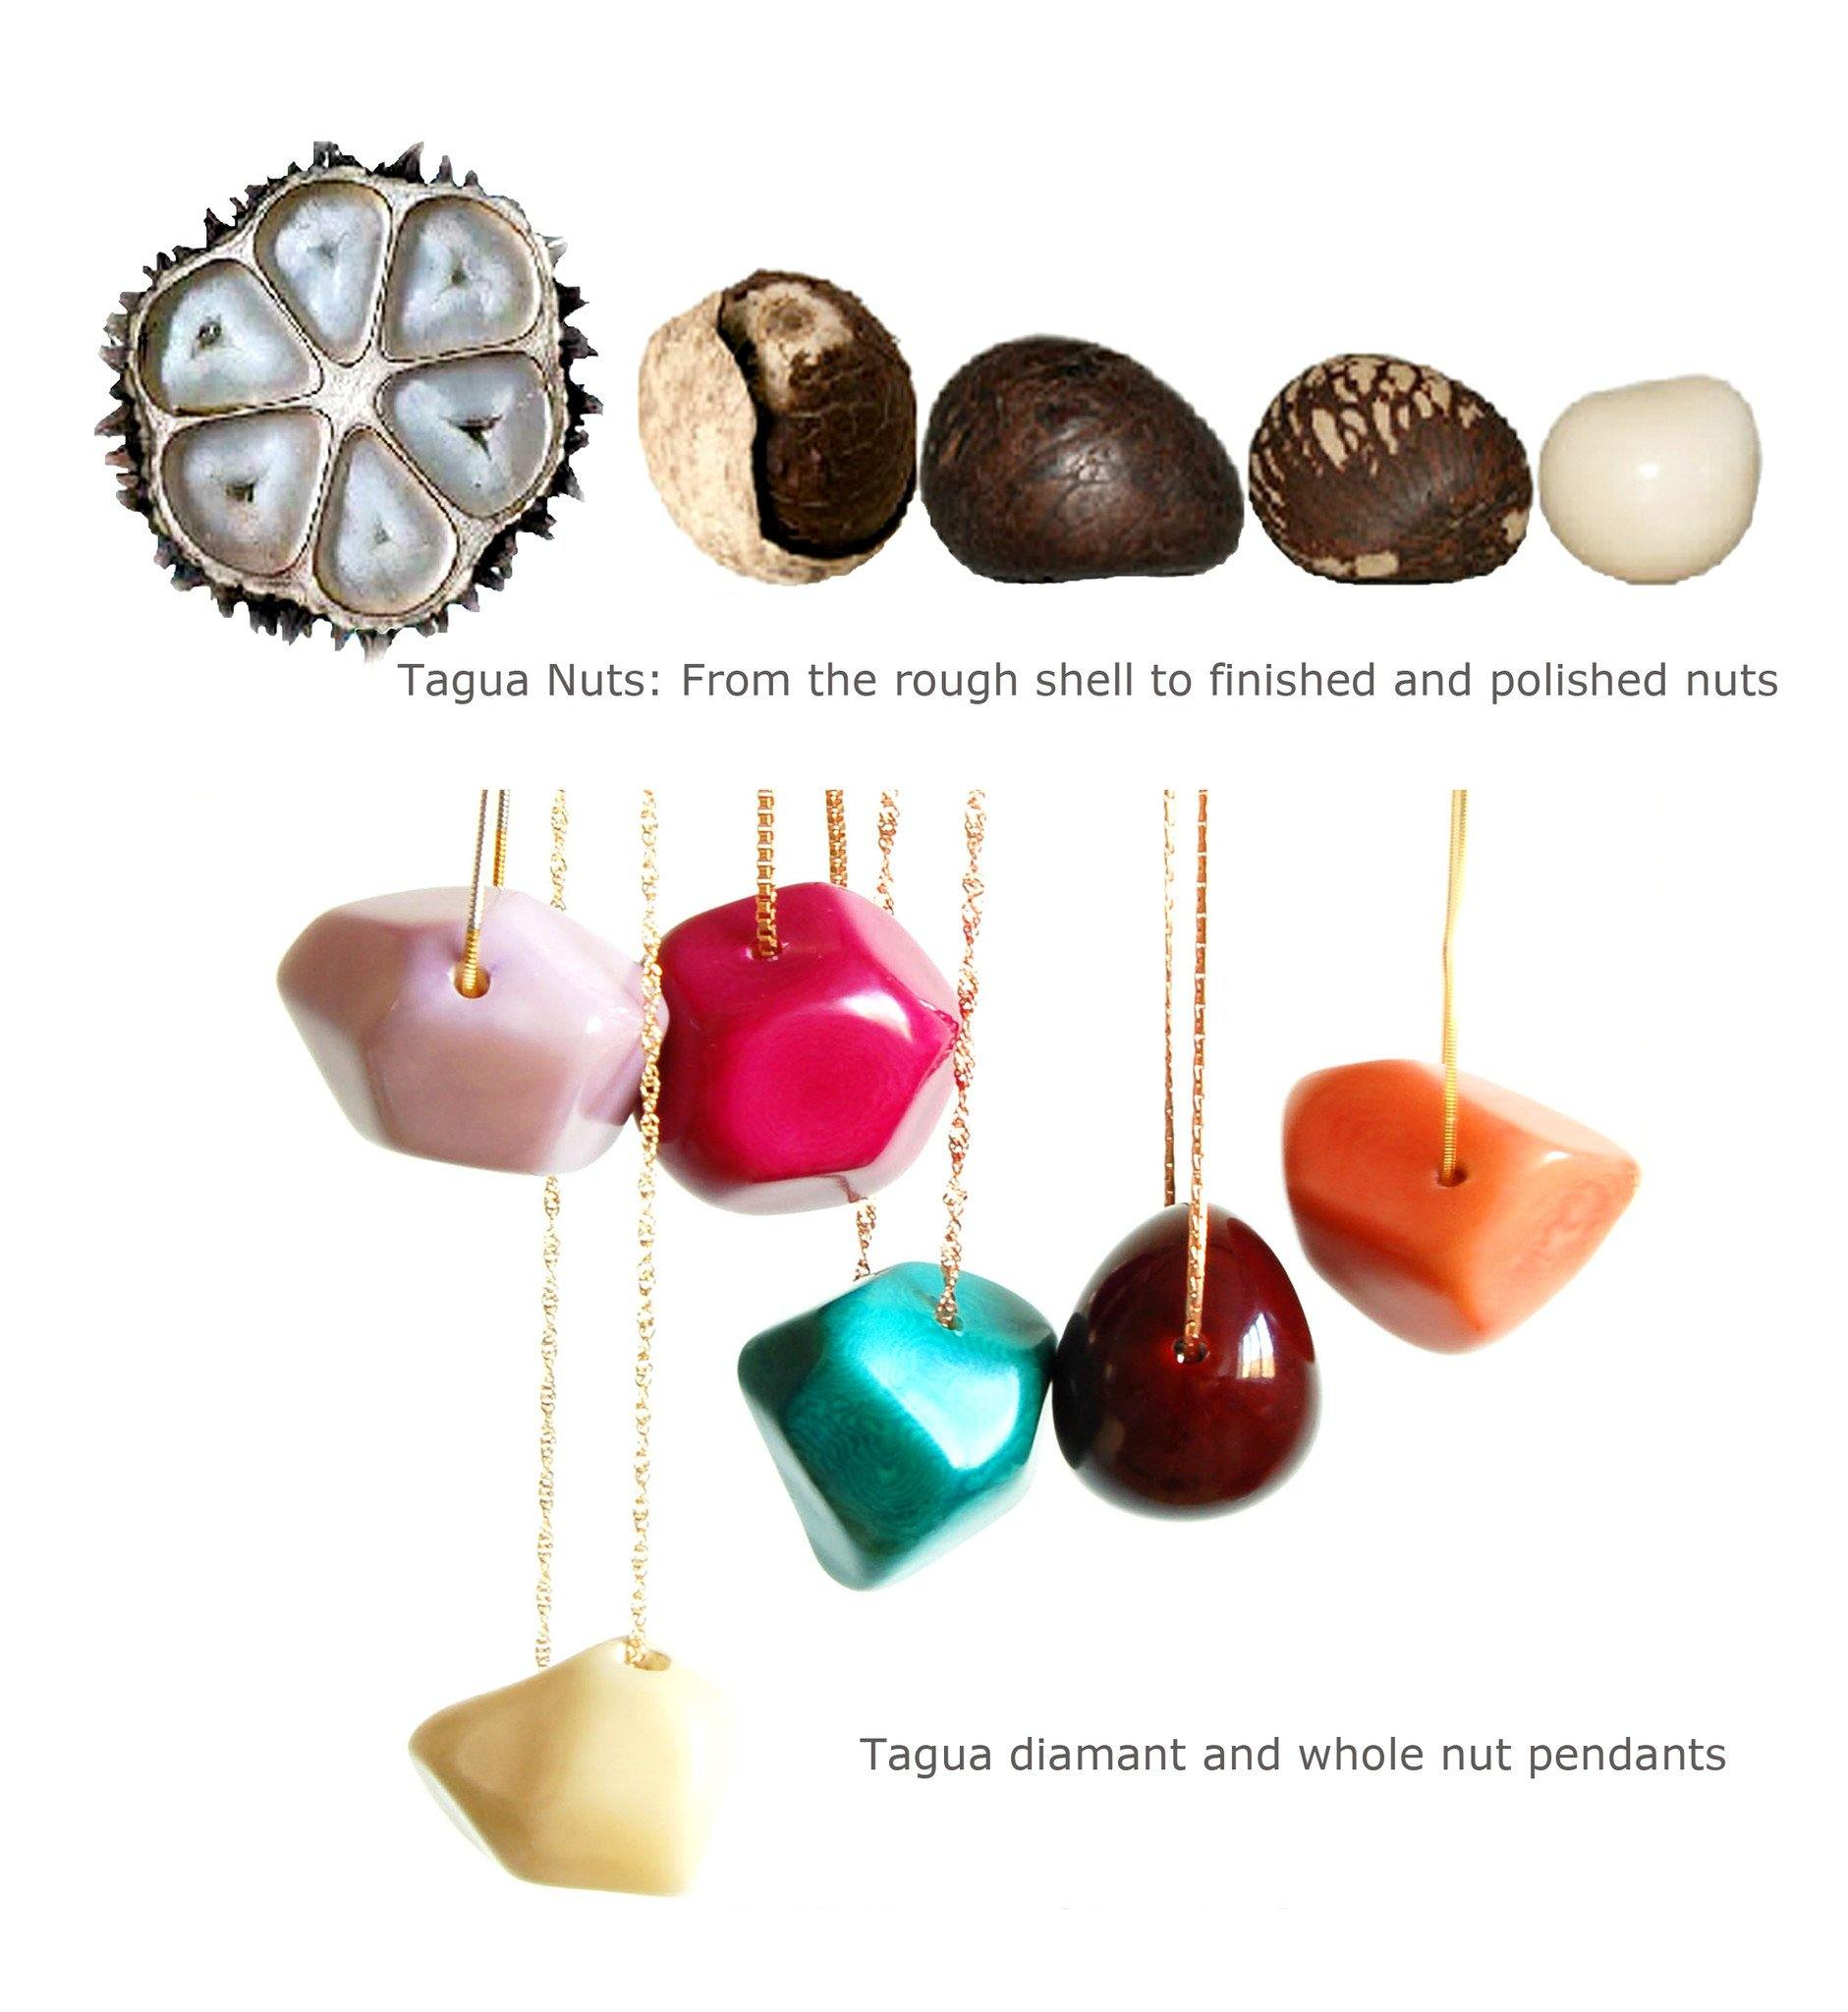 Modern organic jewellery design, made of sustainable tagua nut / vegetable ivory